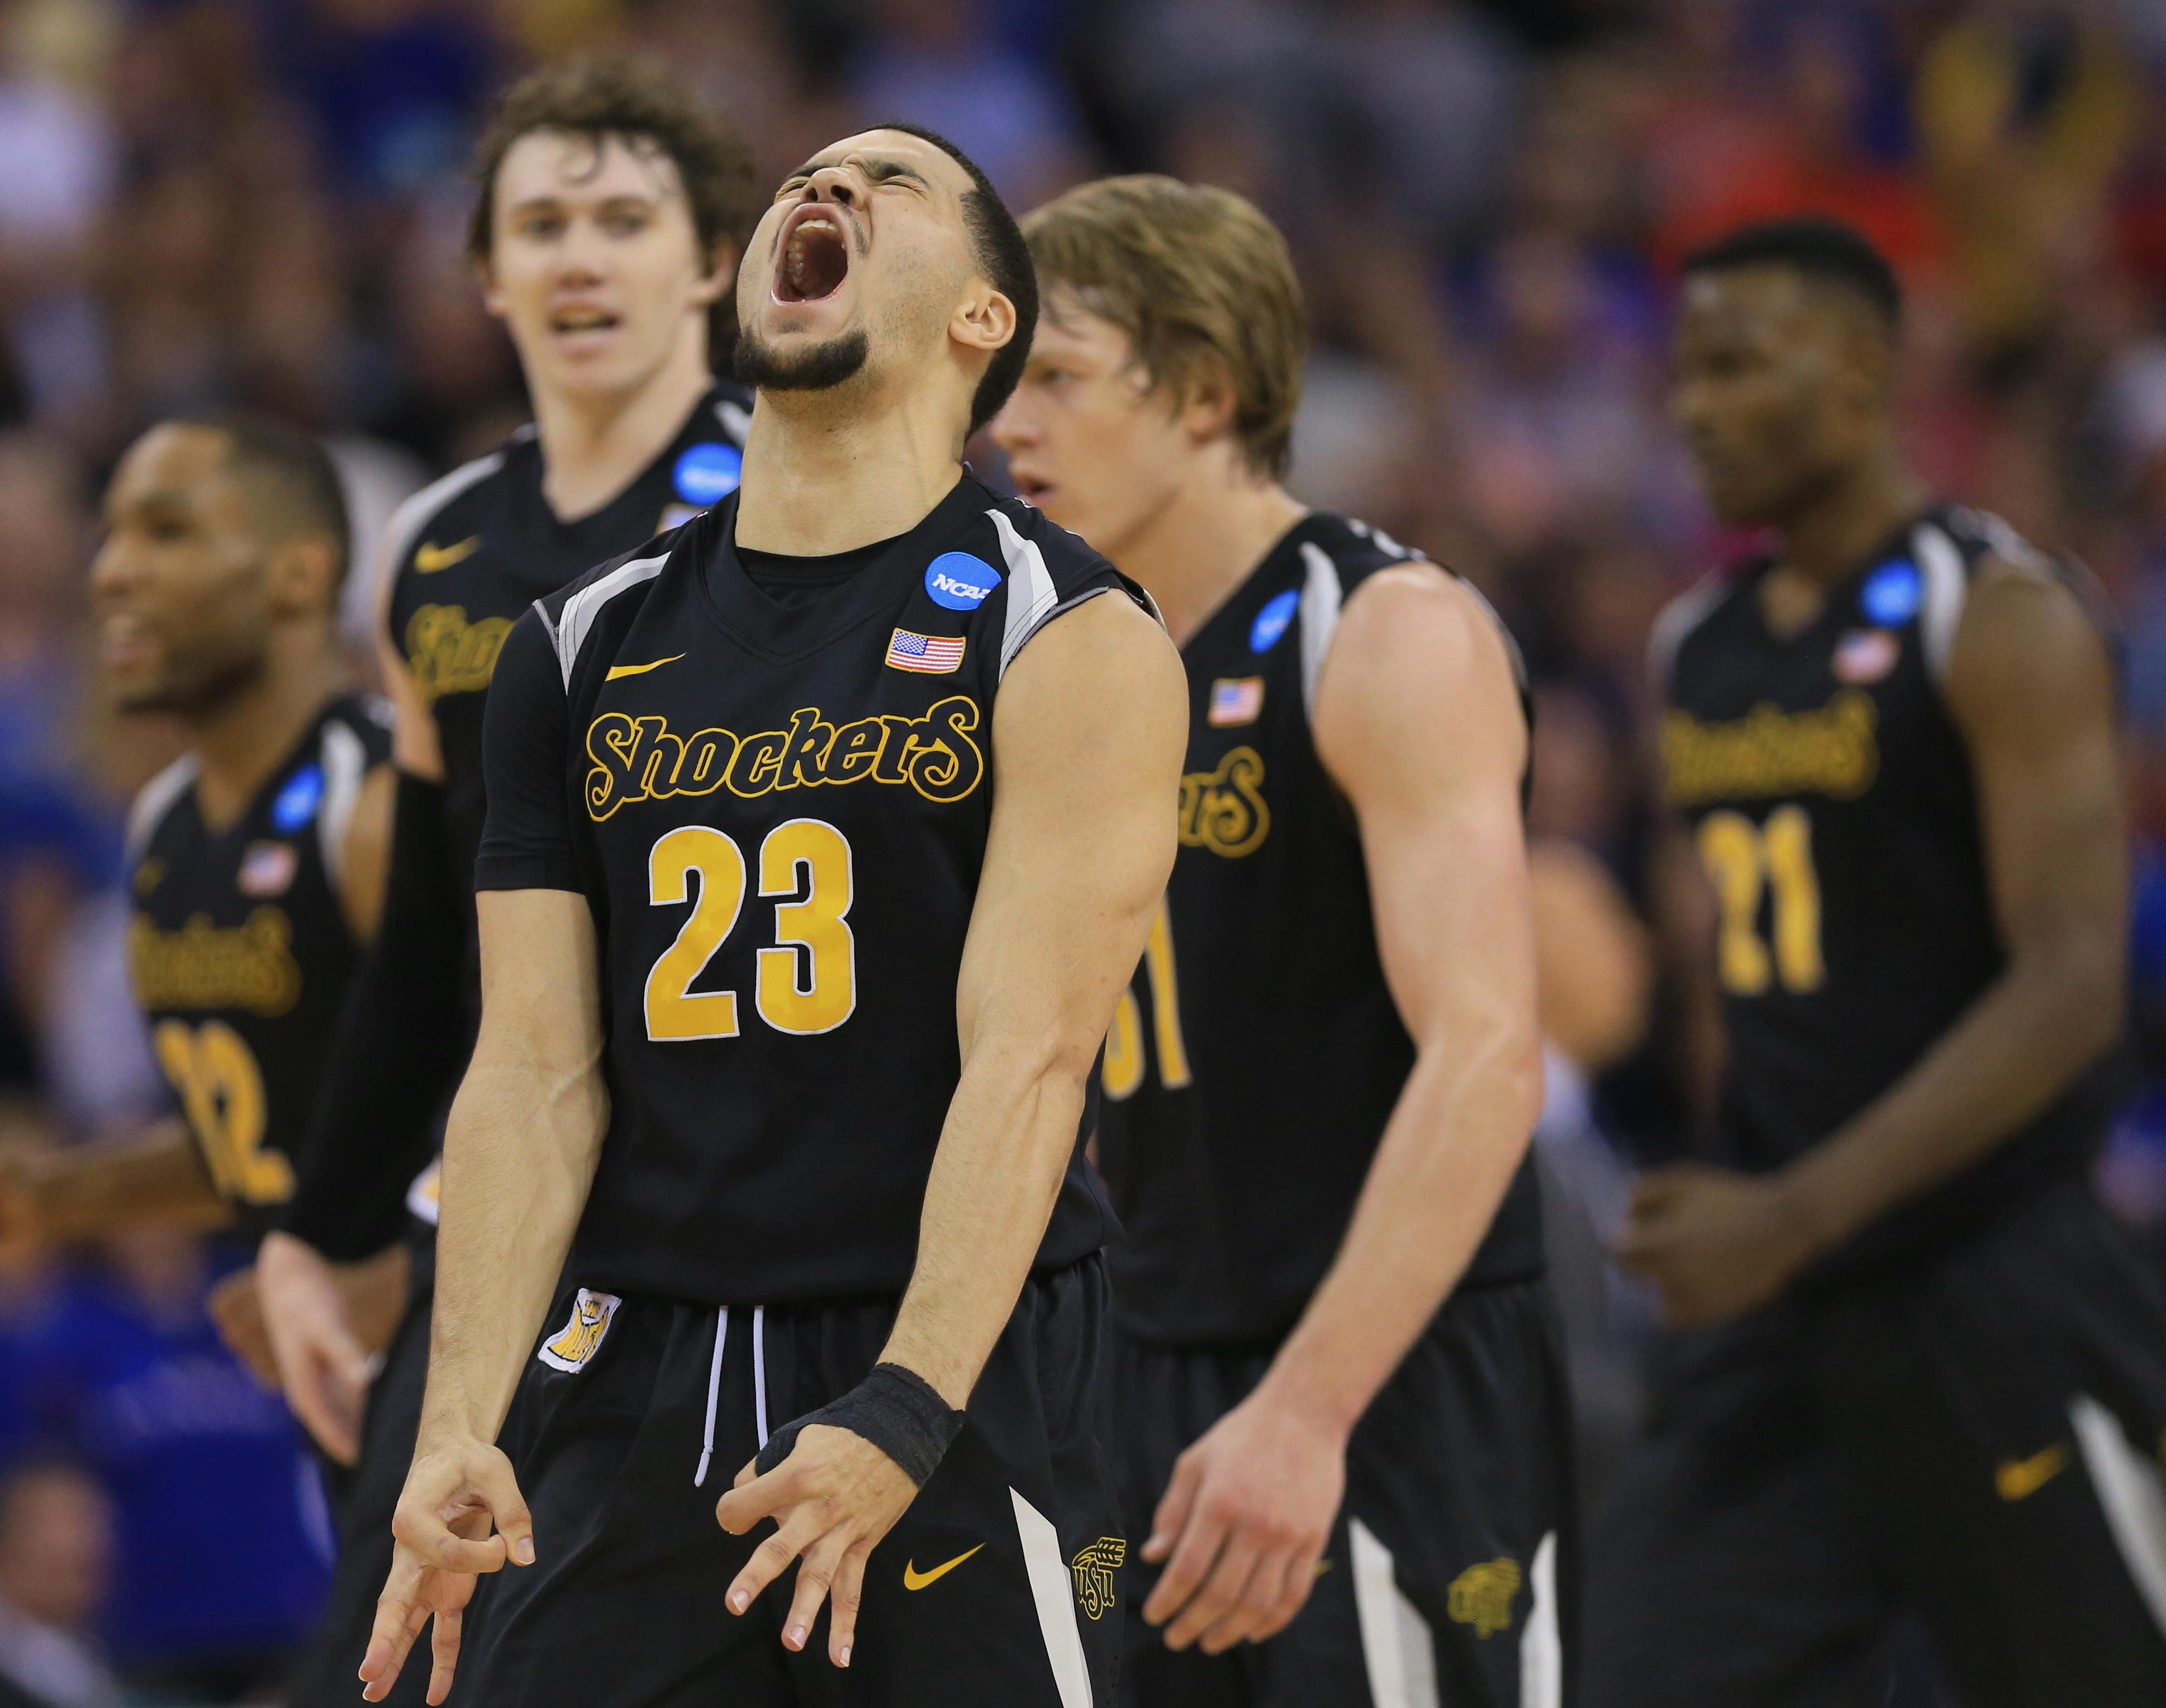 FILE - In this March 22, 2015, file photo, Wichita State's Fred VanVleet (23) reacts after hitting a three-point basket against Kansas during the first half of an NCAA tournament college basketball game in the Round of 32 in Omaha, Neb. Senior day is alwa